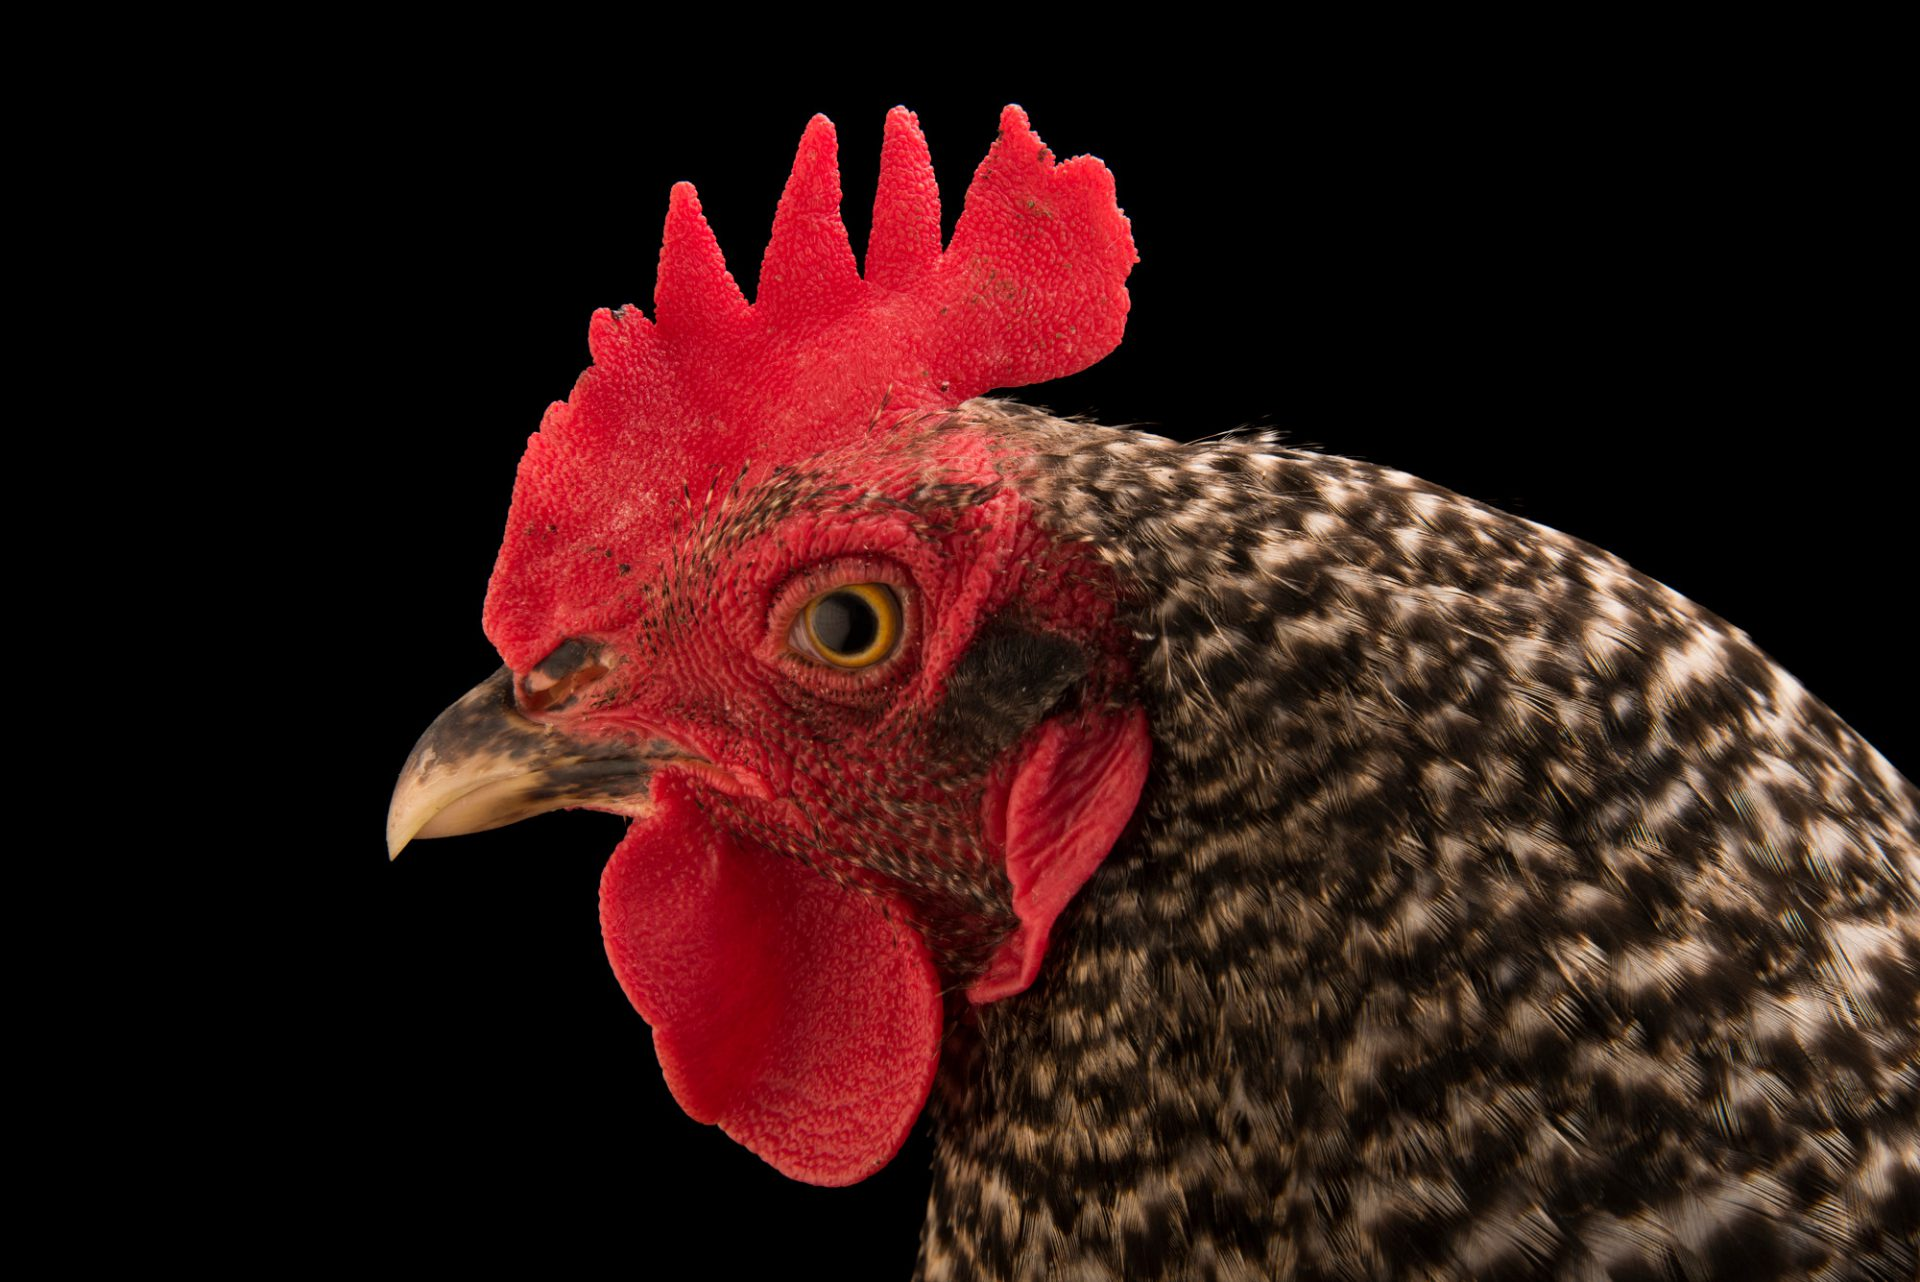 Photo: A Plymouth Rock domestic chicken (Gallus gallus domesticus) in Lincoln, Nebraska.